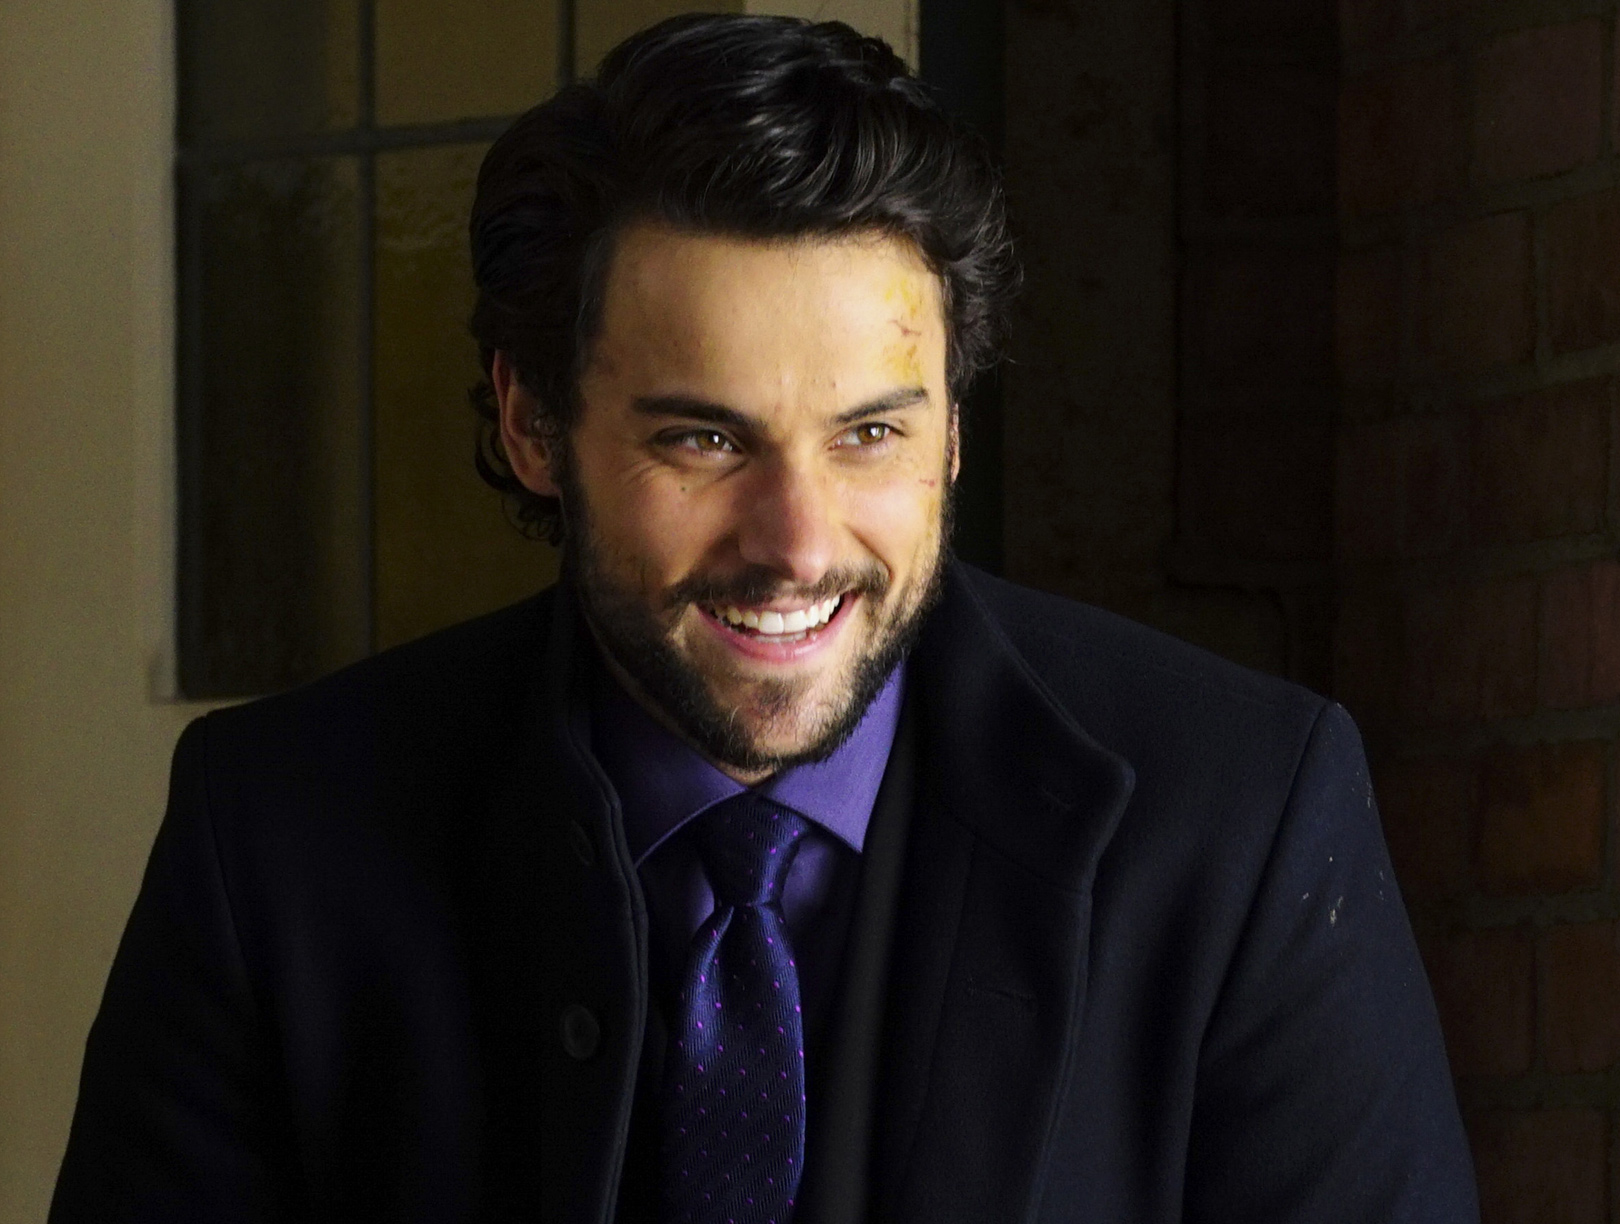 'how To Get Away With Murder' Season 1 Finale Huffpost 0222_murder_inset10